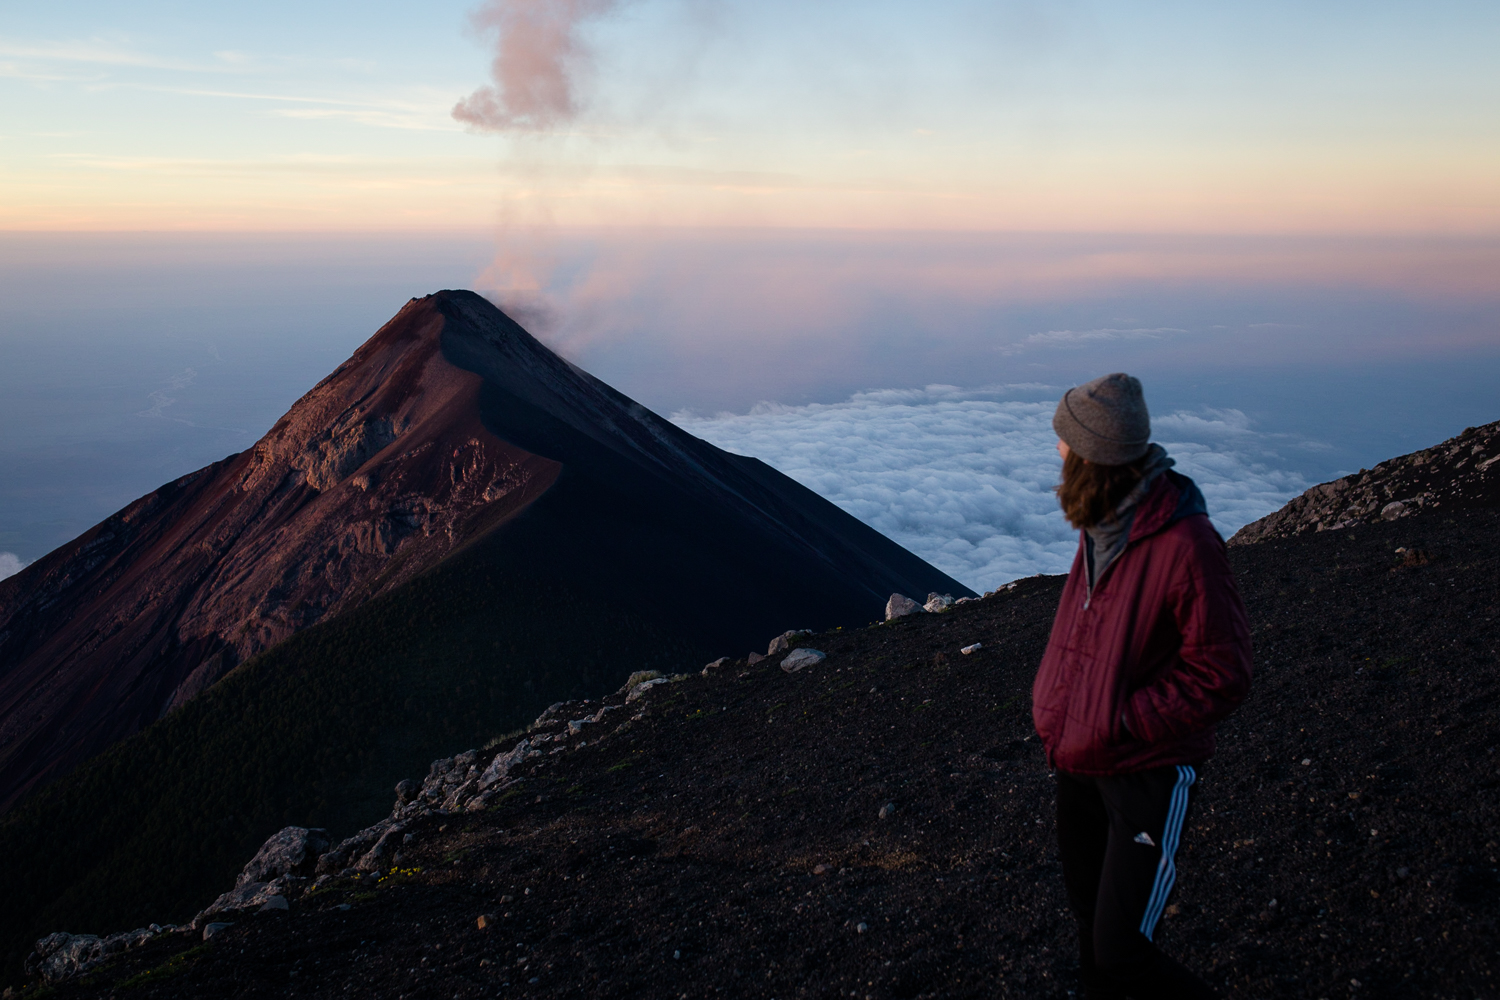 Summiting two volcanos in 24 hours with new friends - November 1View Blog